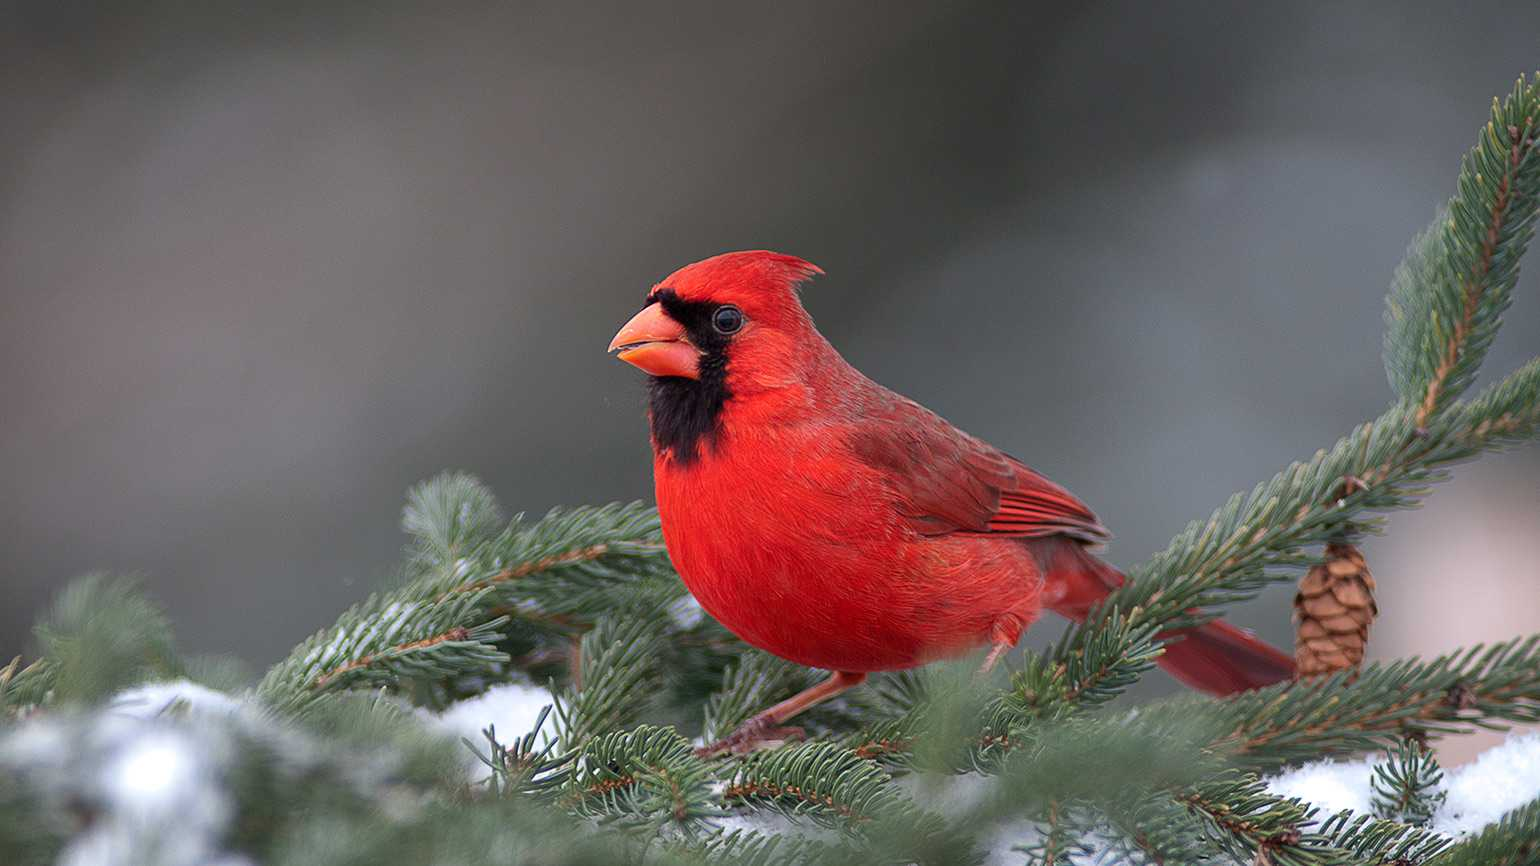 Cardinal perched on a snow-covered pine branch